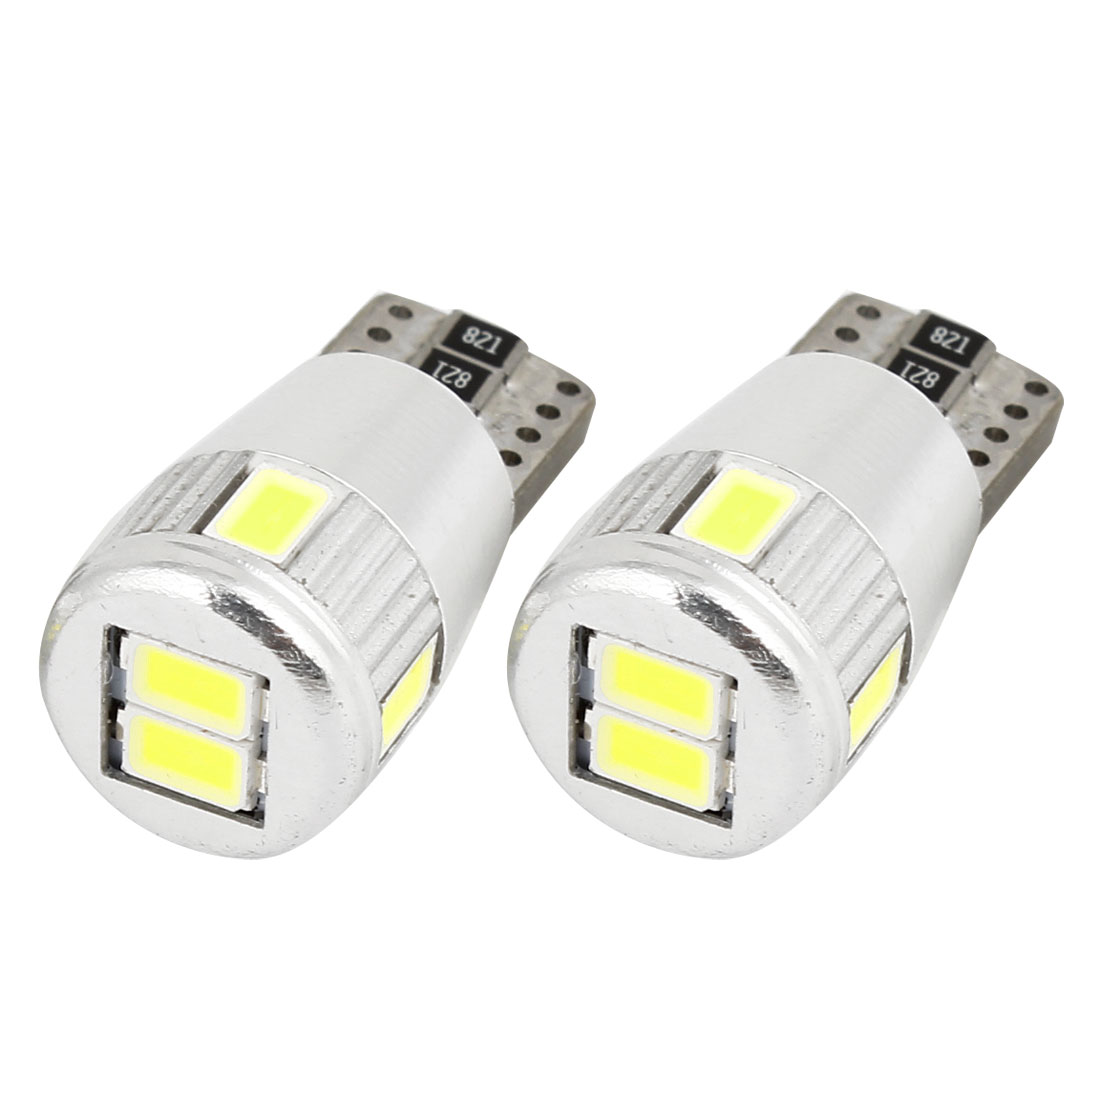 2 Pcs Car Canbus Internal T10 White 5630 SMD 6 LED Wedge Light Turning Lamp Bulb 12V